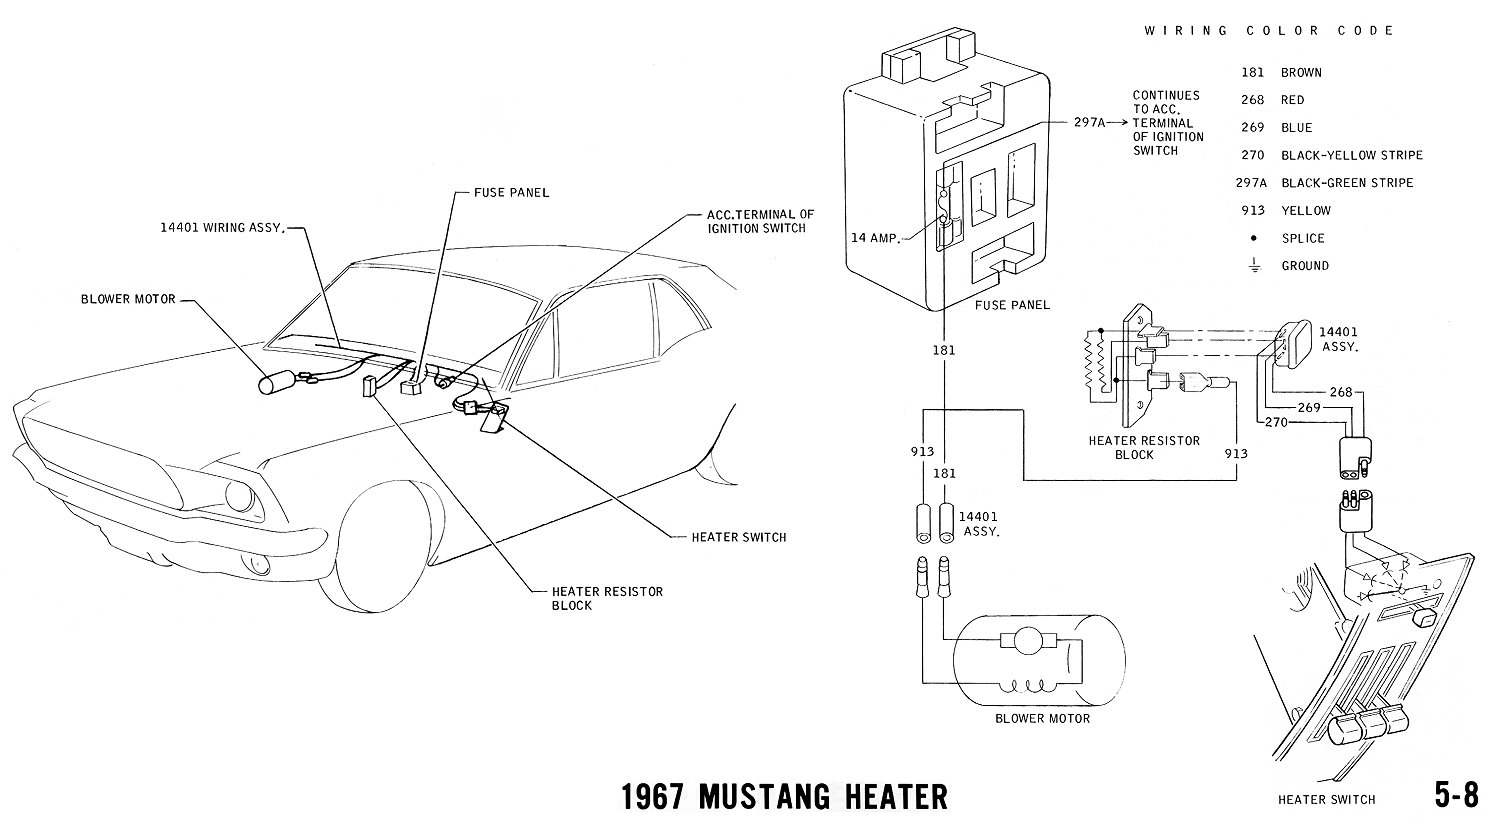 67heater 1968 mustang blower motor wiring 100 images 1968 ford mustang 1968 mustang alternator wiring diagram at webbmarketing.co